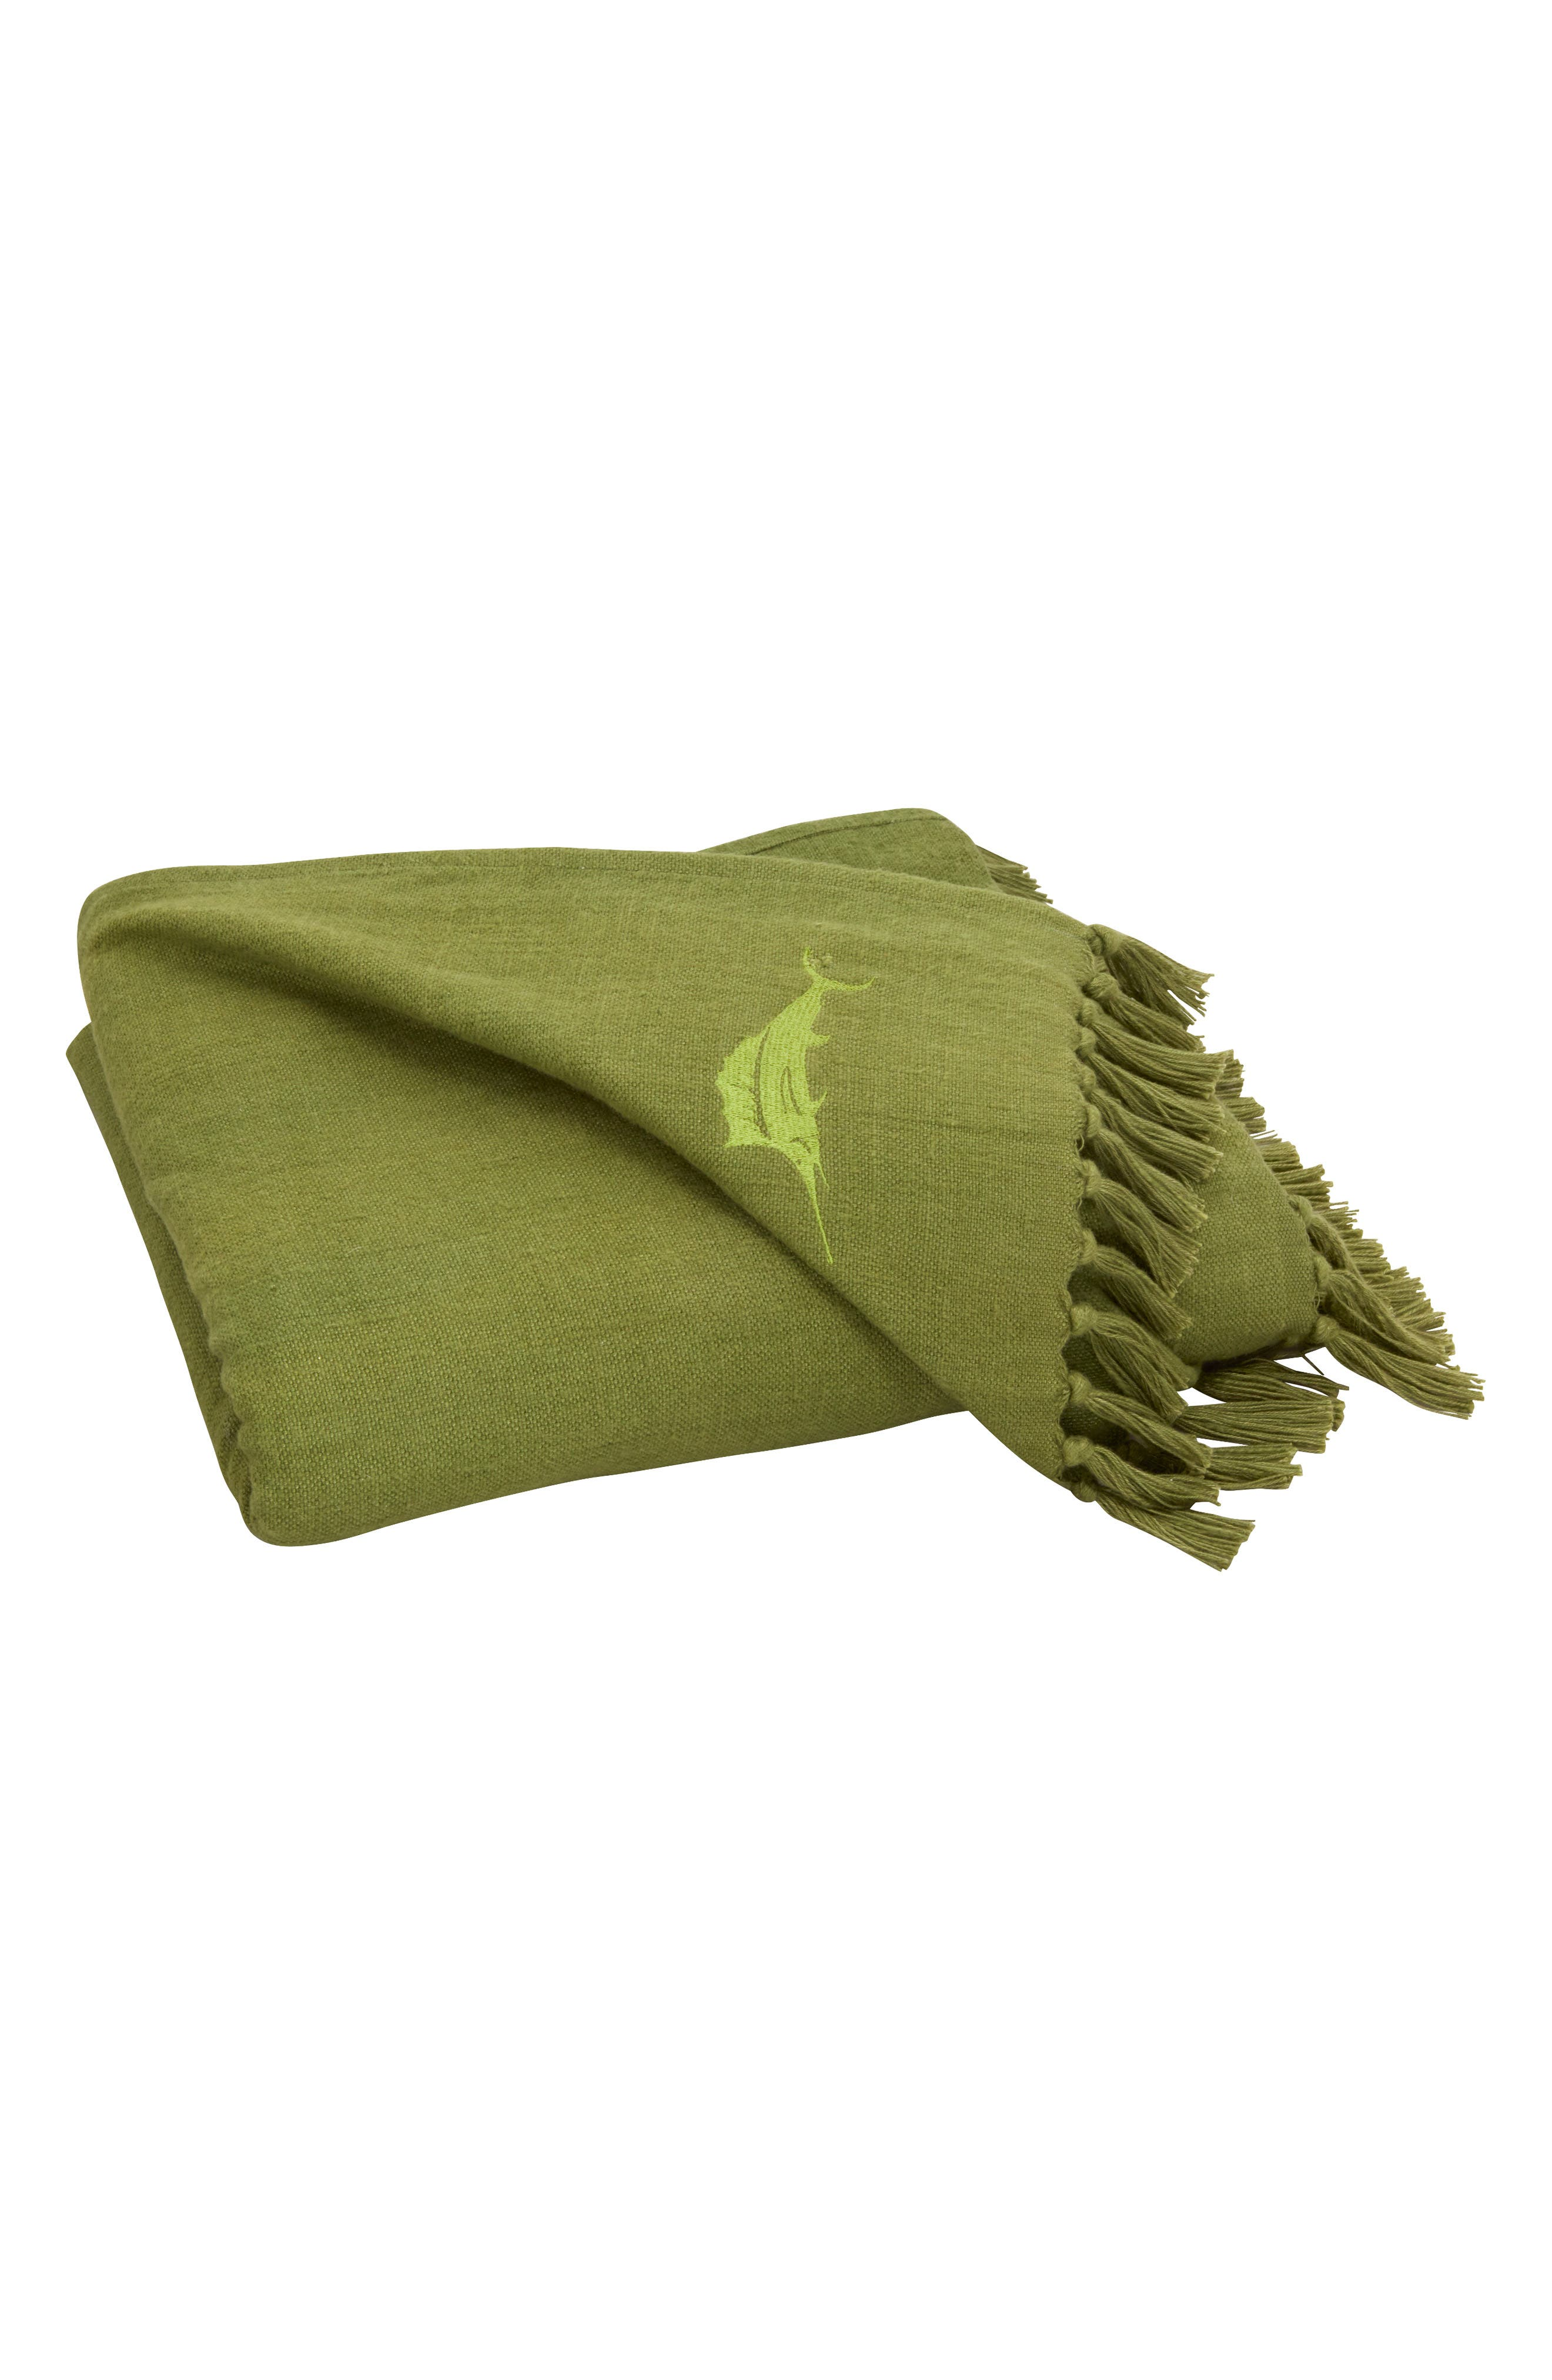 An embroidered sailfish gives iconic Tommy Bahama branding to this woven cotton-blend throw that\\\'s edged by tassels and brushed for a soft touch. Style Name: Tommy Bahama Canvas Fringe Throw Blanket. Style Number: 6084583. Available in stores.